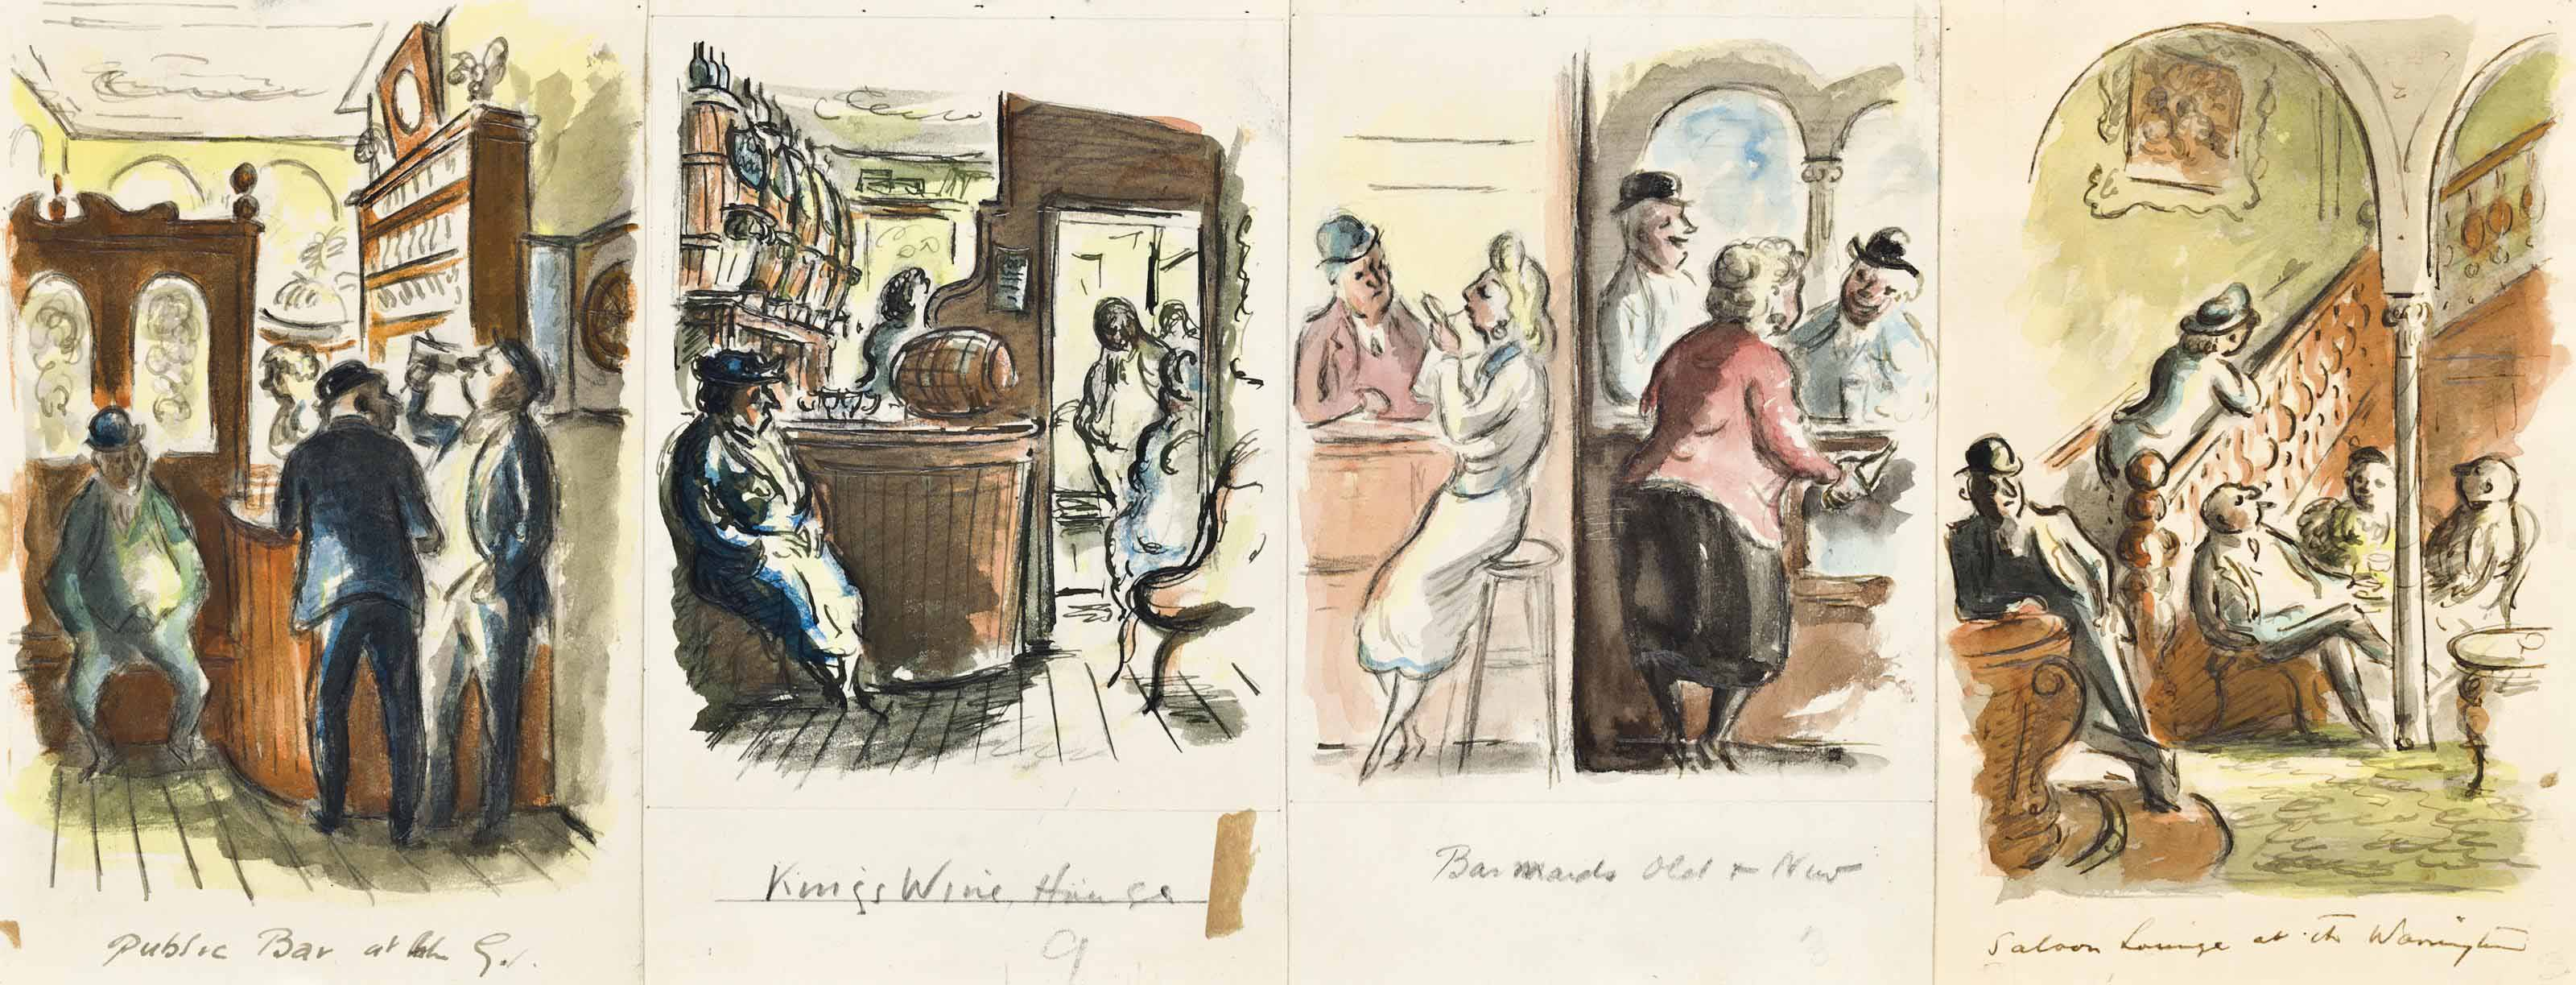 Four illustrations of pub interiors (all illustrated)